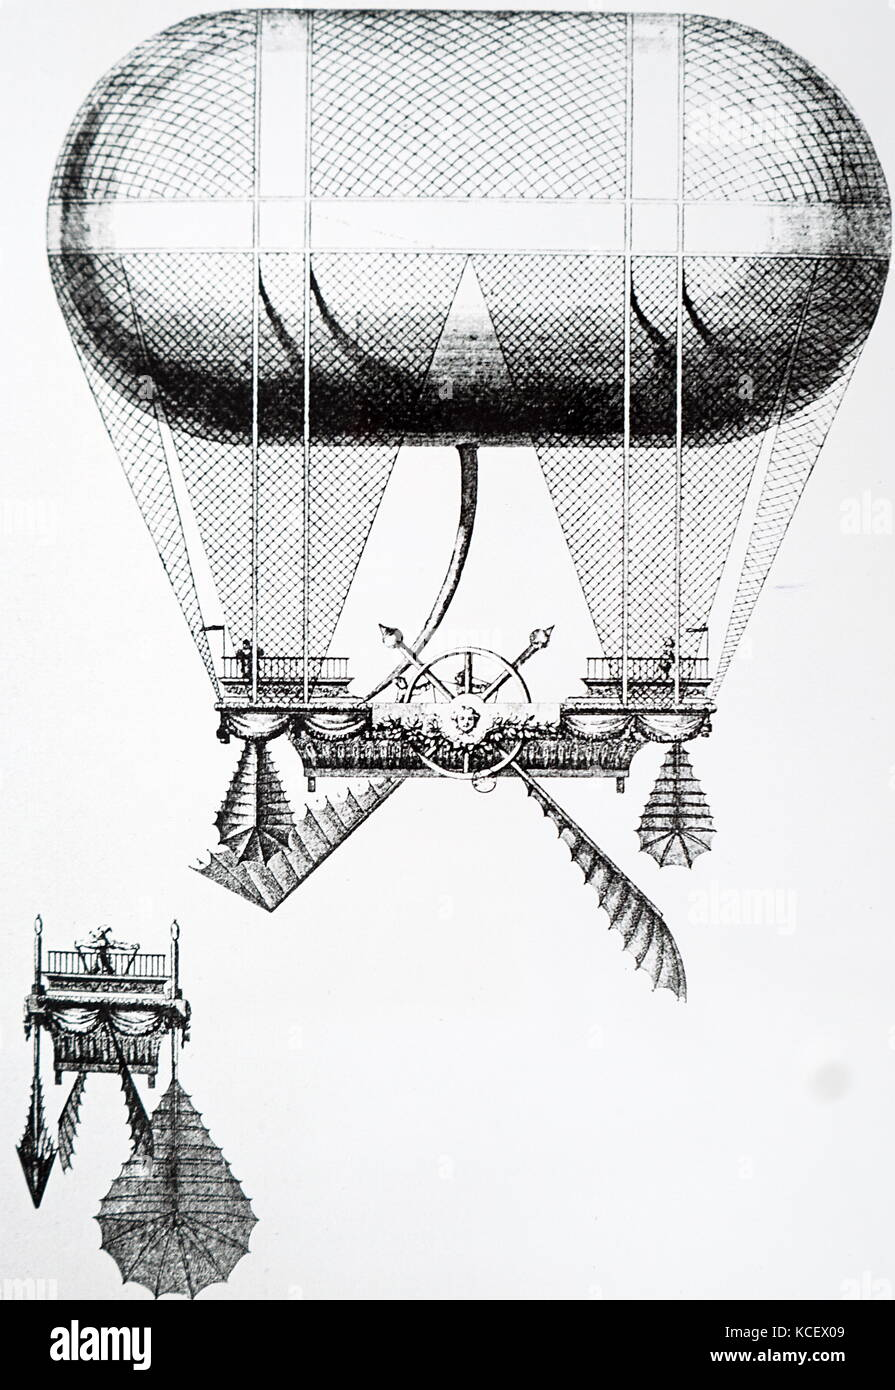 Engraving Carra's balloon fitted with paddle wheels as a means of propulsion. Dated 18th Century - Stock Image